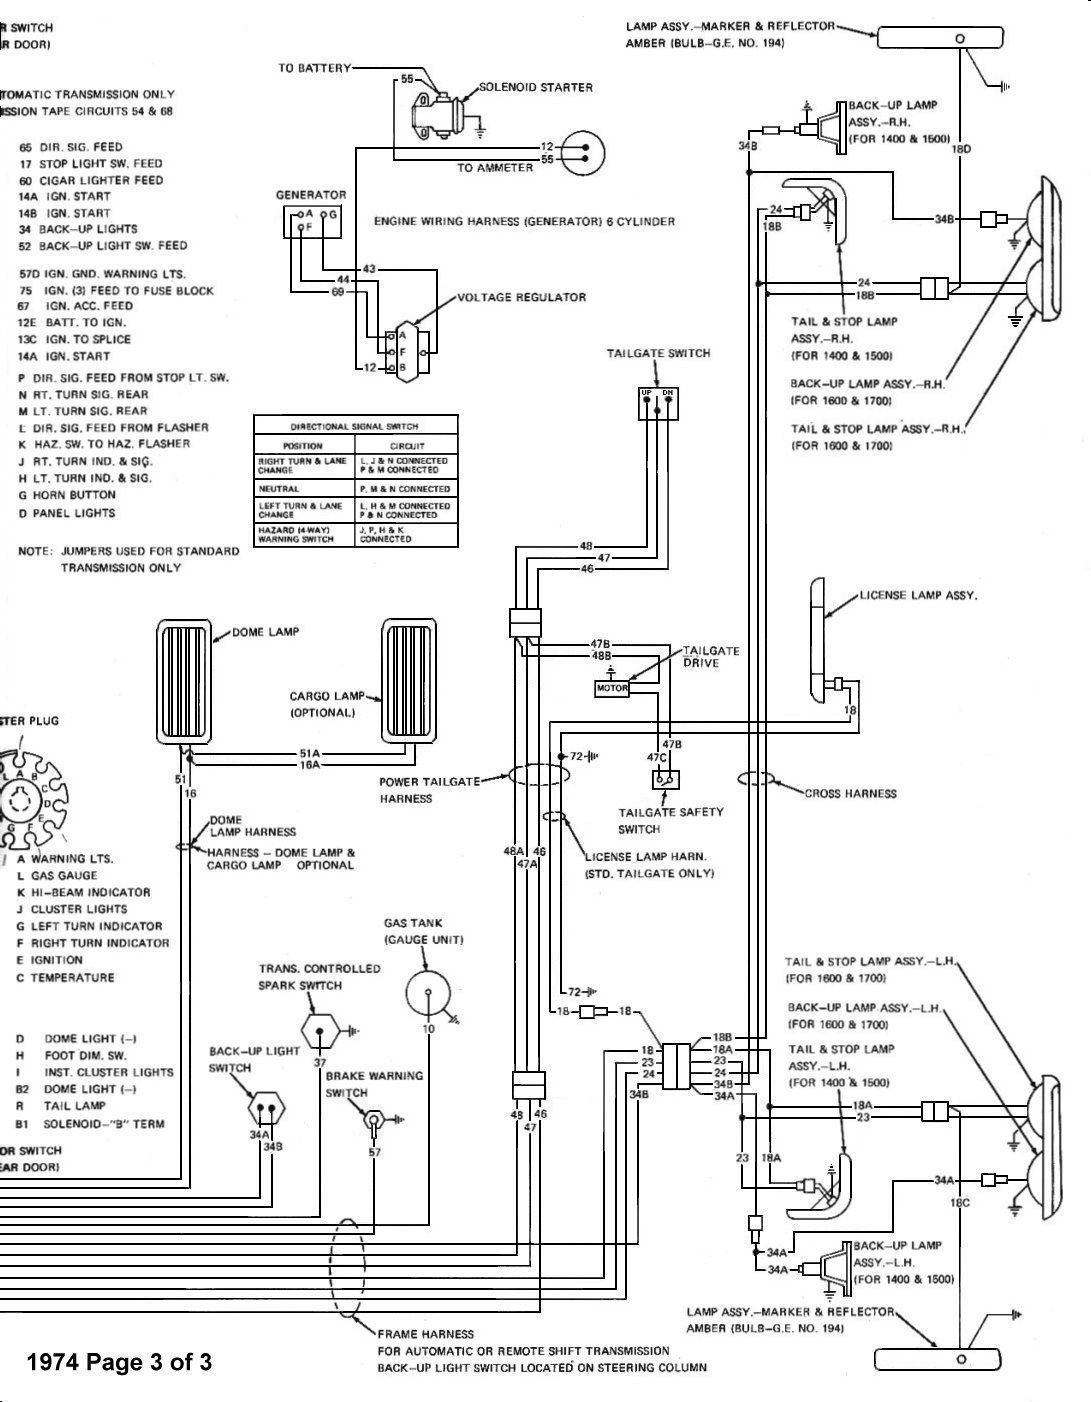 jeep tj wiring diagram sound bar for single pole switch pro armor 34